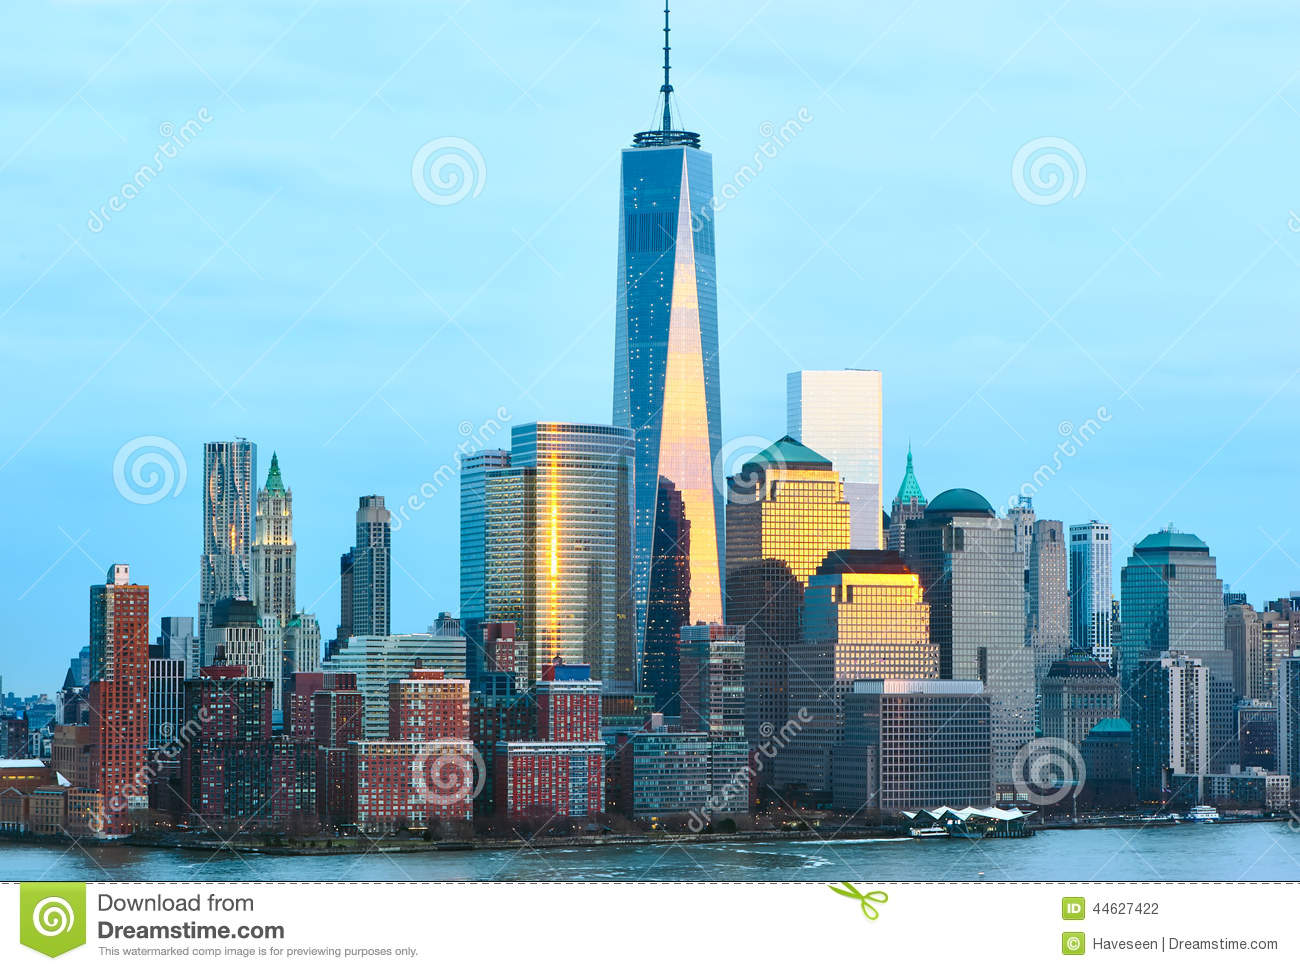 a7c8afce8ea New York City Manhattan skyline with One World Trade Center Tower (AKA  Freedom Tower) over Hudson River viewed from New Jersey